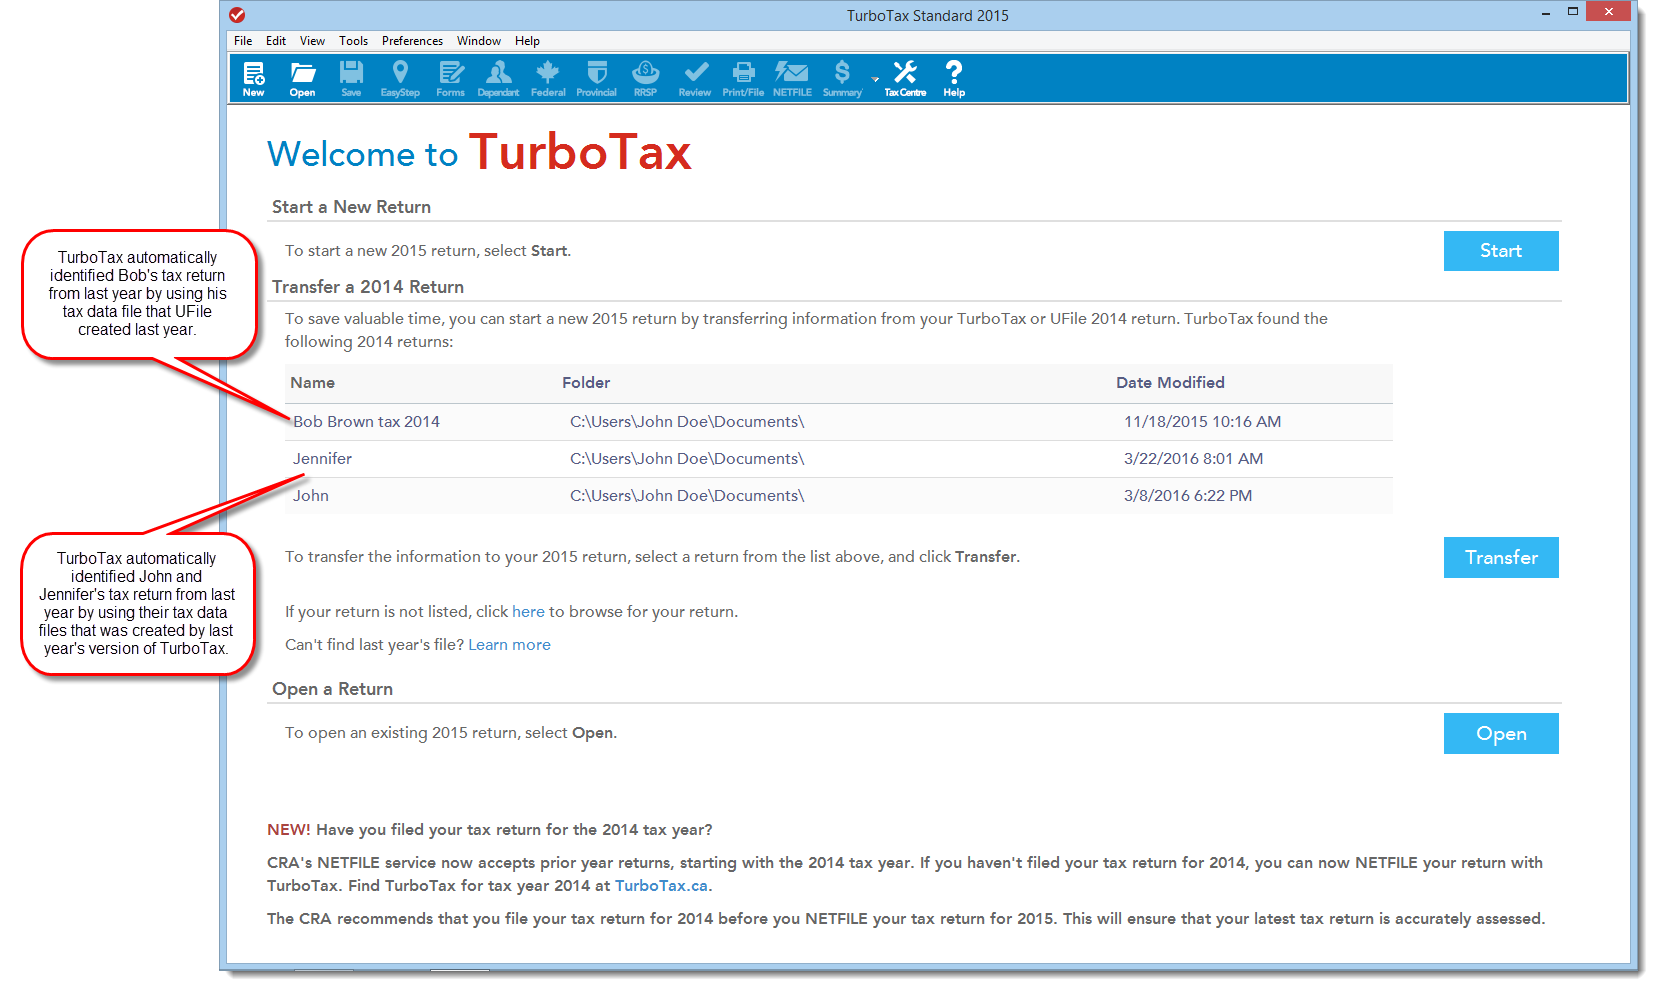 TurboTax CD/download edition Welcome screen show tax data files available to transfer information from